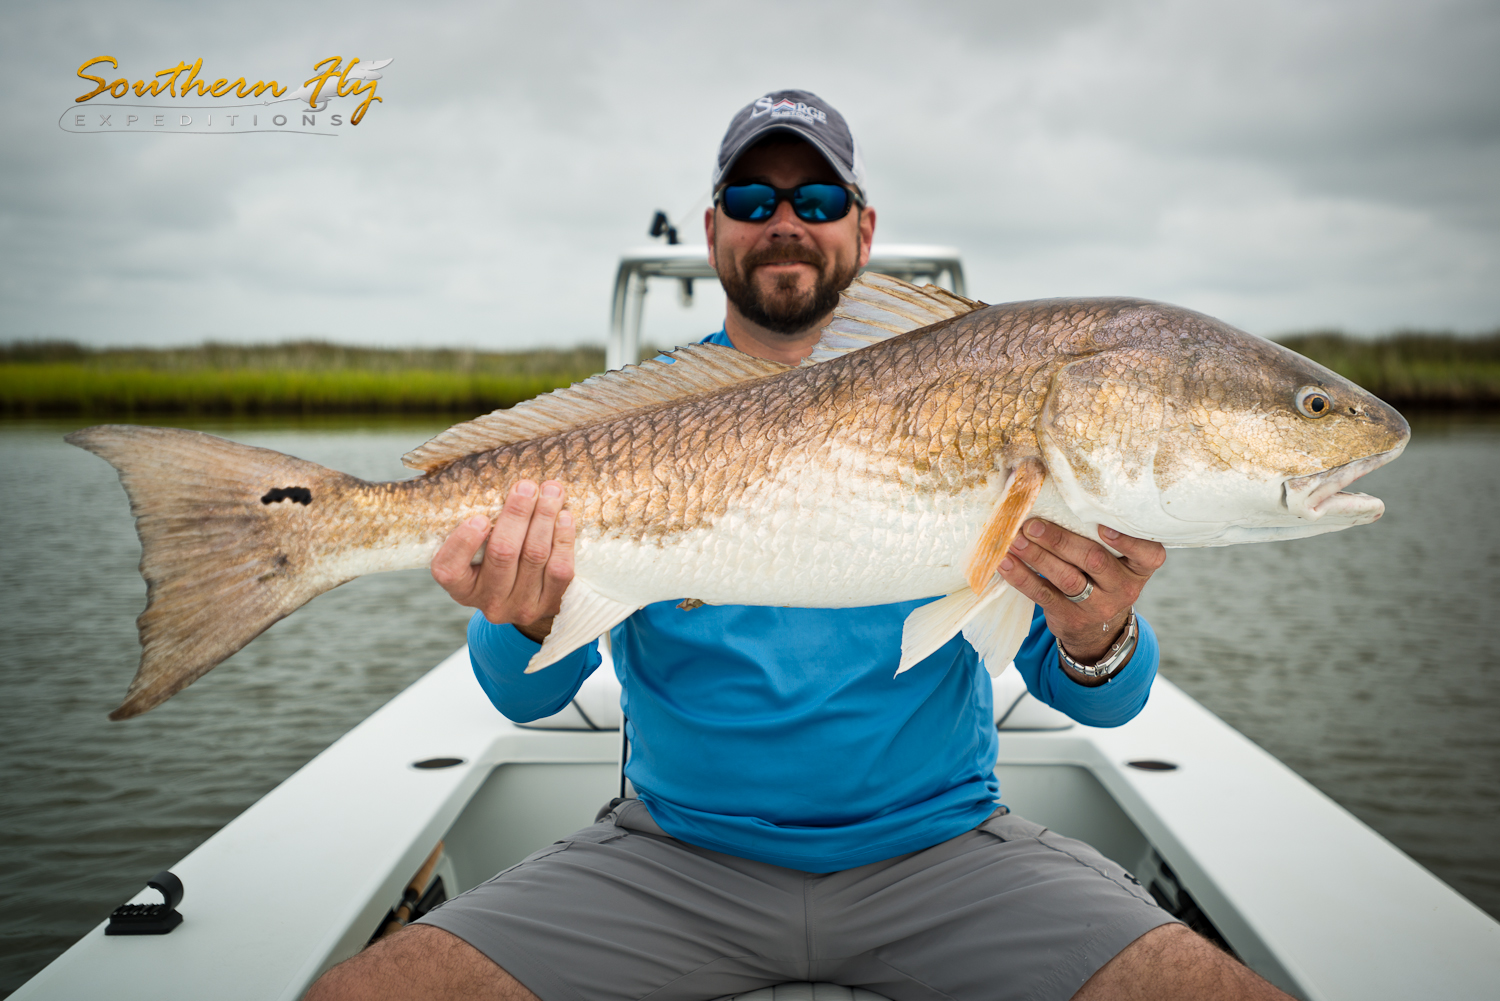 Catching Red fish Louisiana